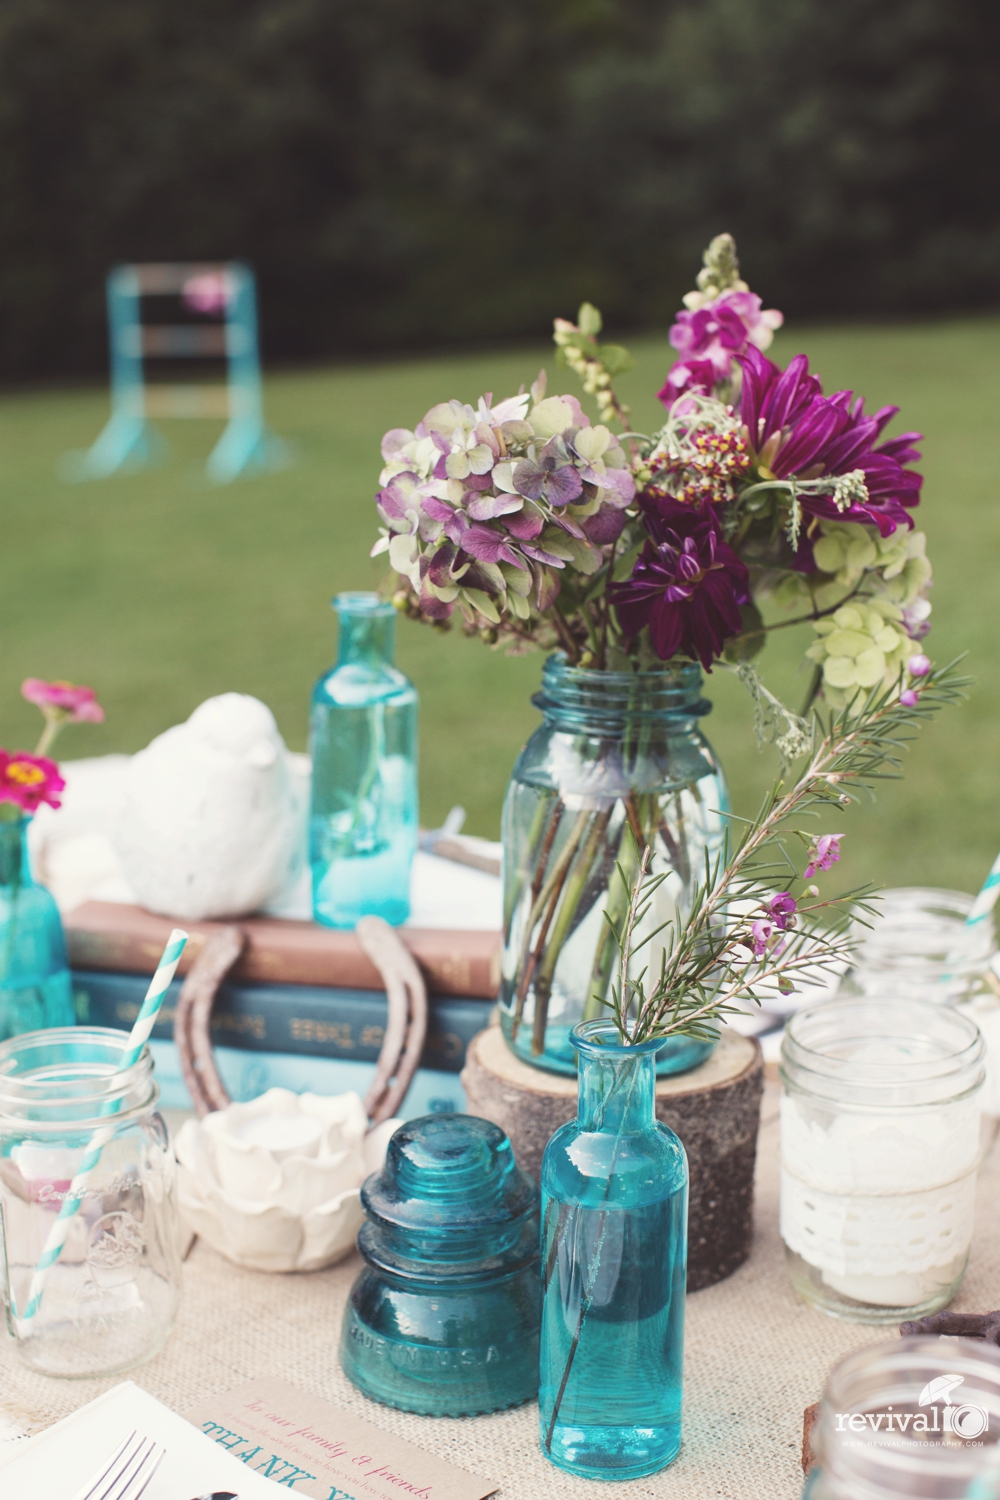 Old mason jars and vintage glassware as centerpieces for weddings